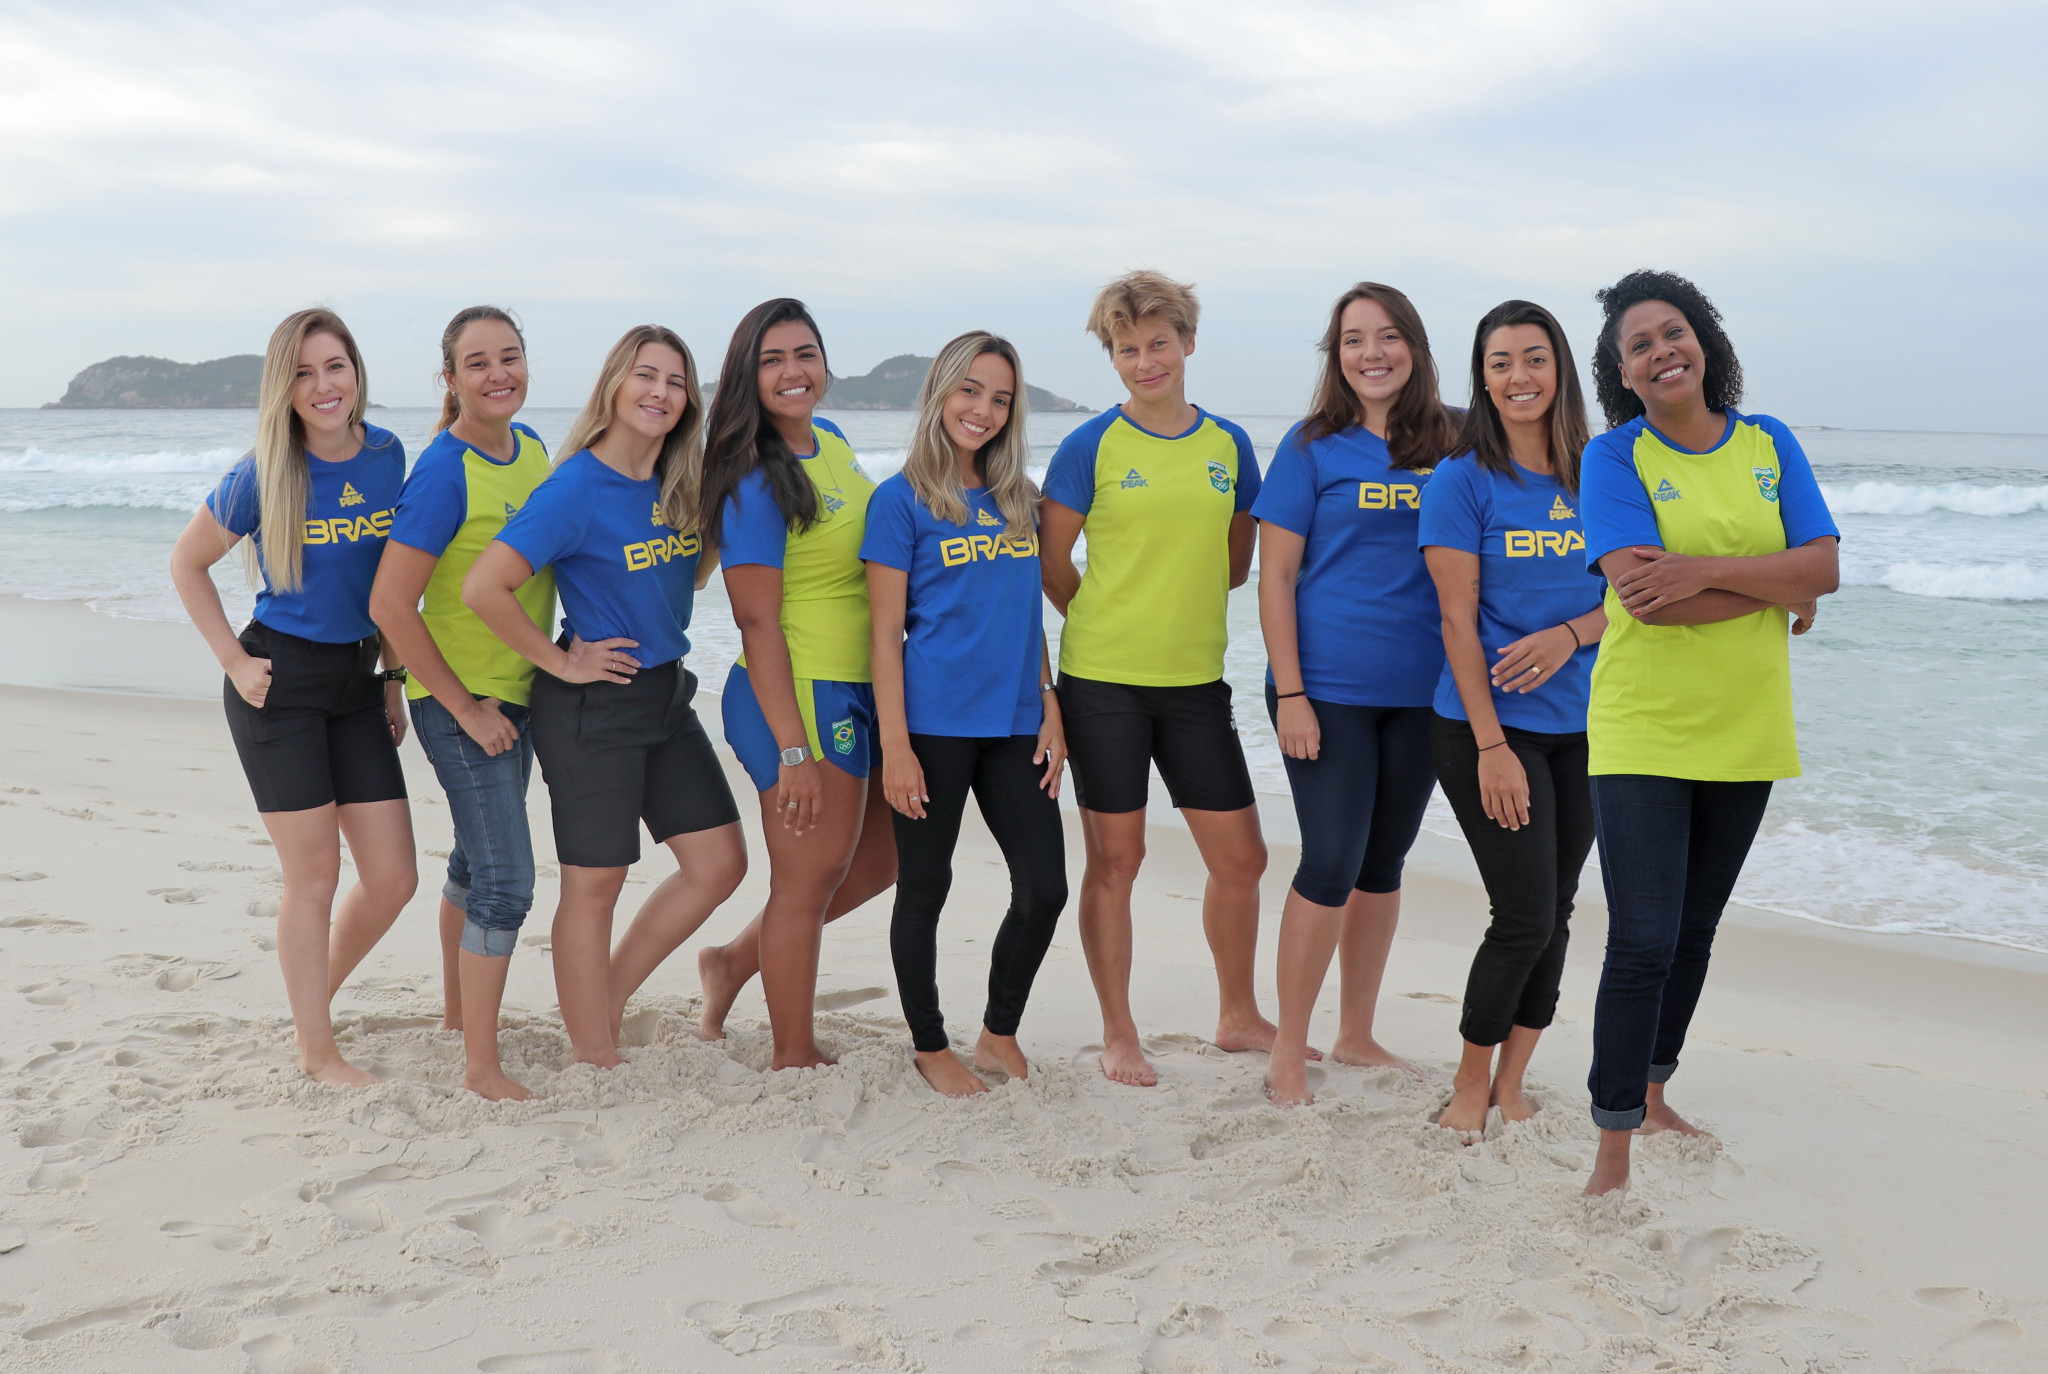 Brazilian Olympic Committee to send all-female athlete support team to South American Beach Games